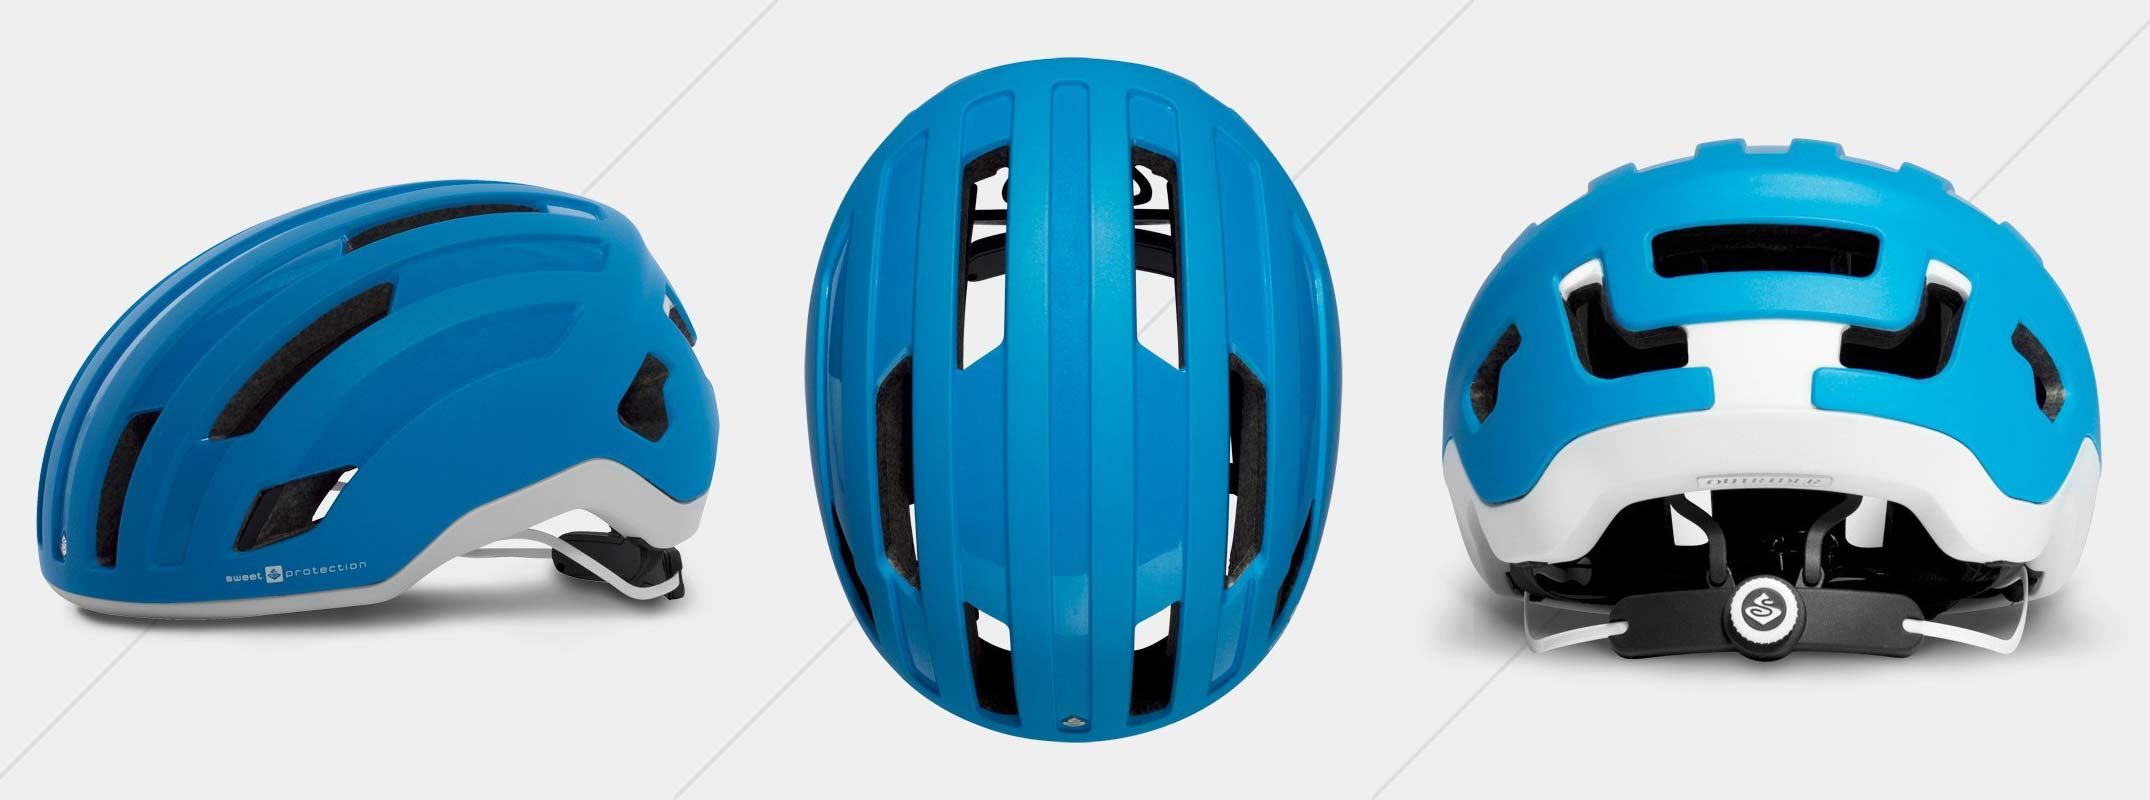 Sweet Protection S New Outrider Delivers Affordable